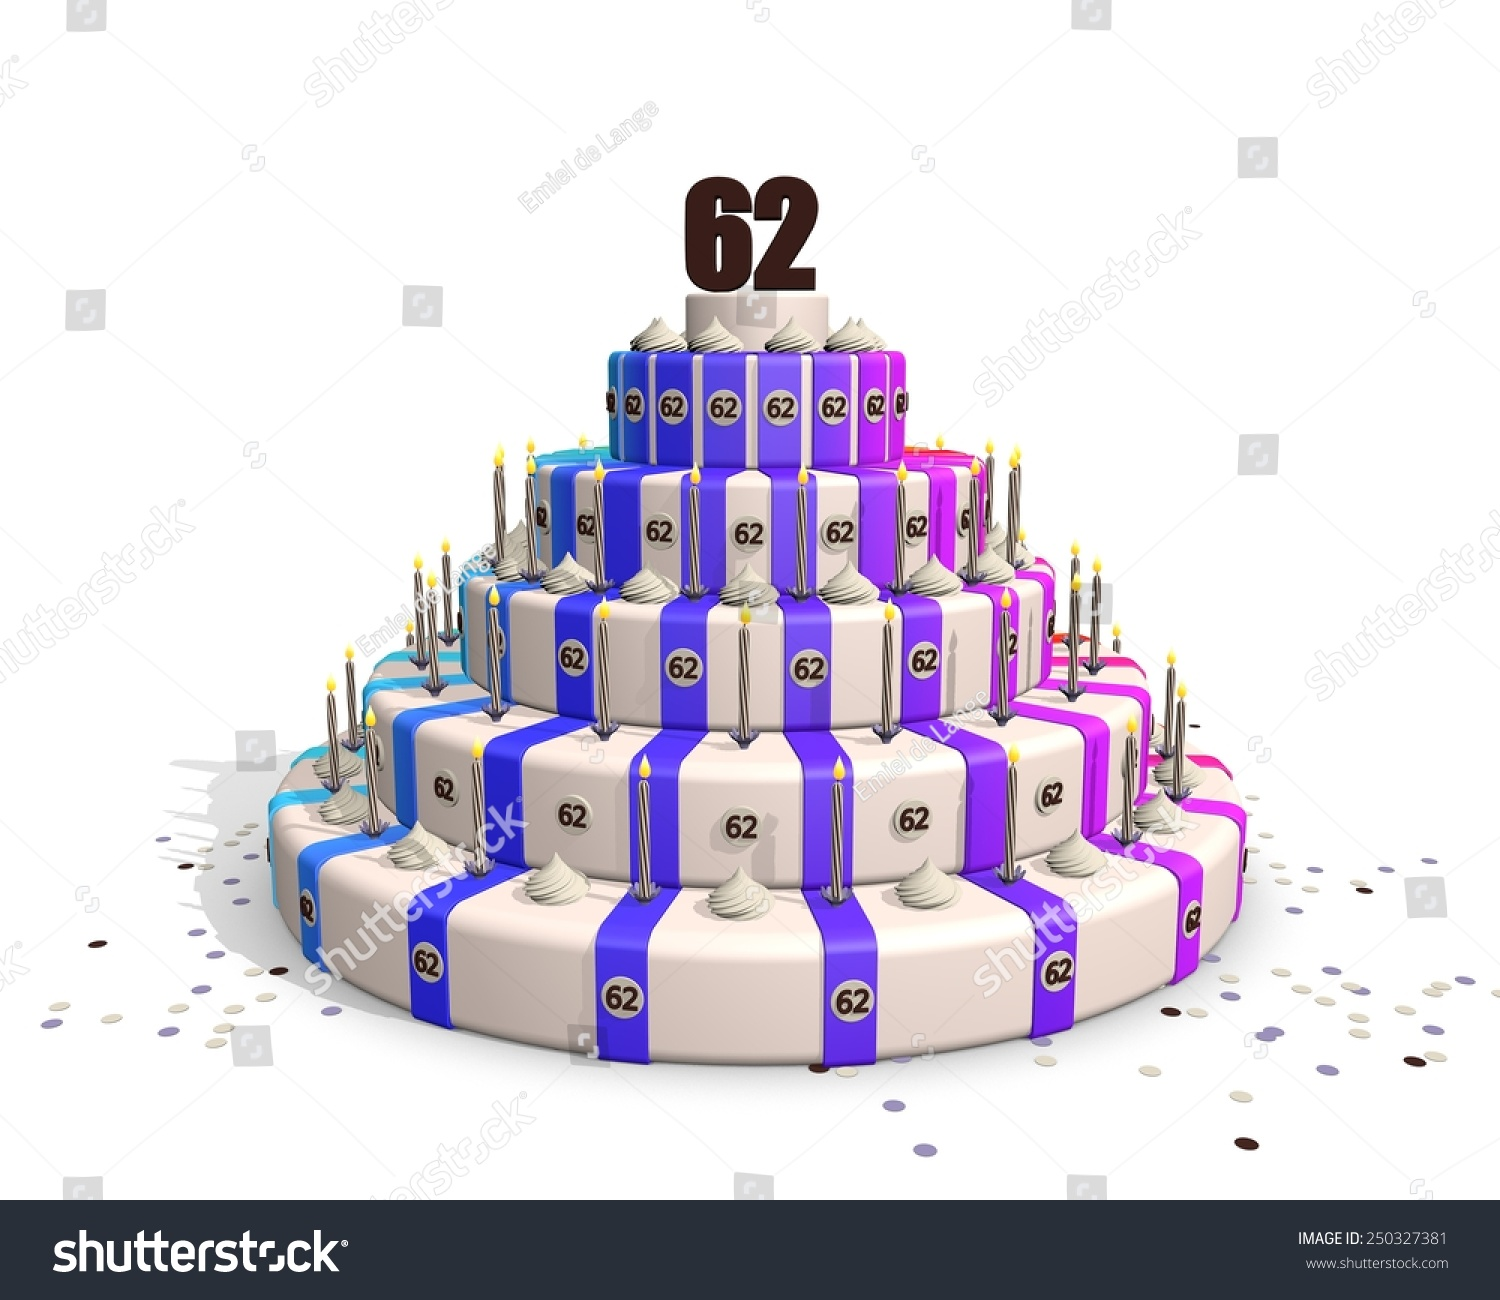 Big Happy Birthday Cake With Candles And On Top A Chocolate Number 62 250327381